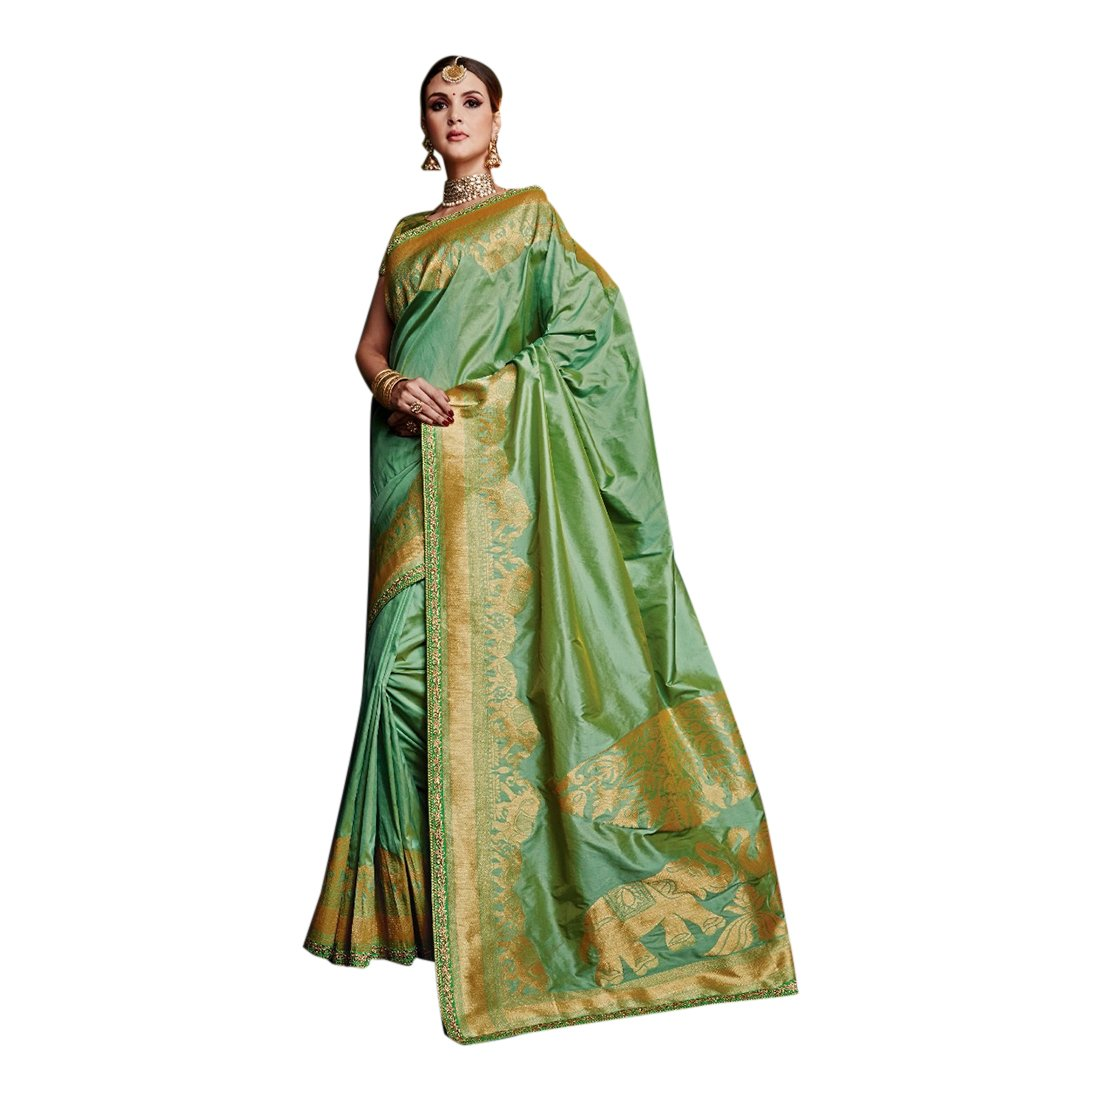 Designer Collection Stylsih Royal Silk Saree Blouse Indian Wedding Sari Women Muslim Eid 2797